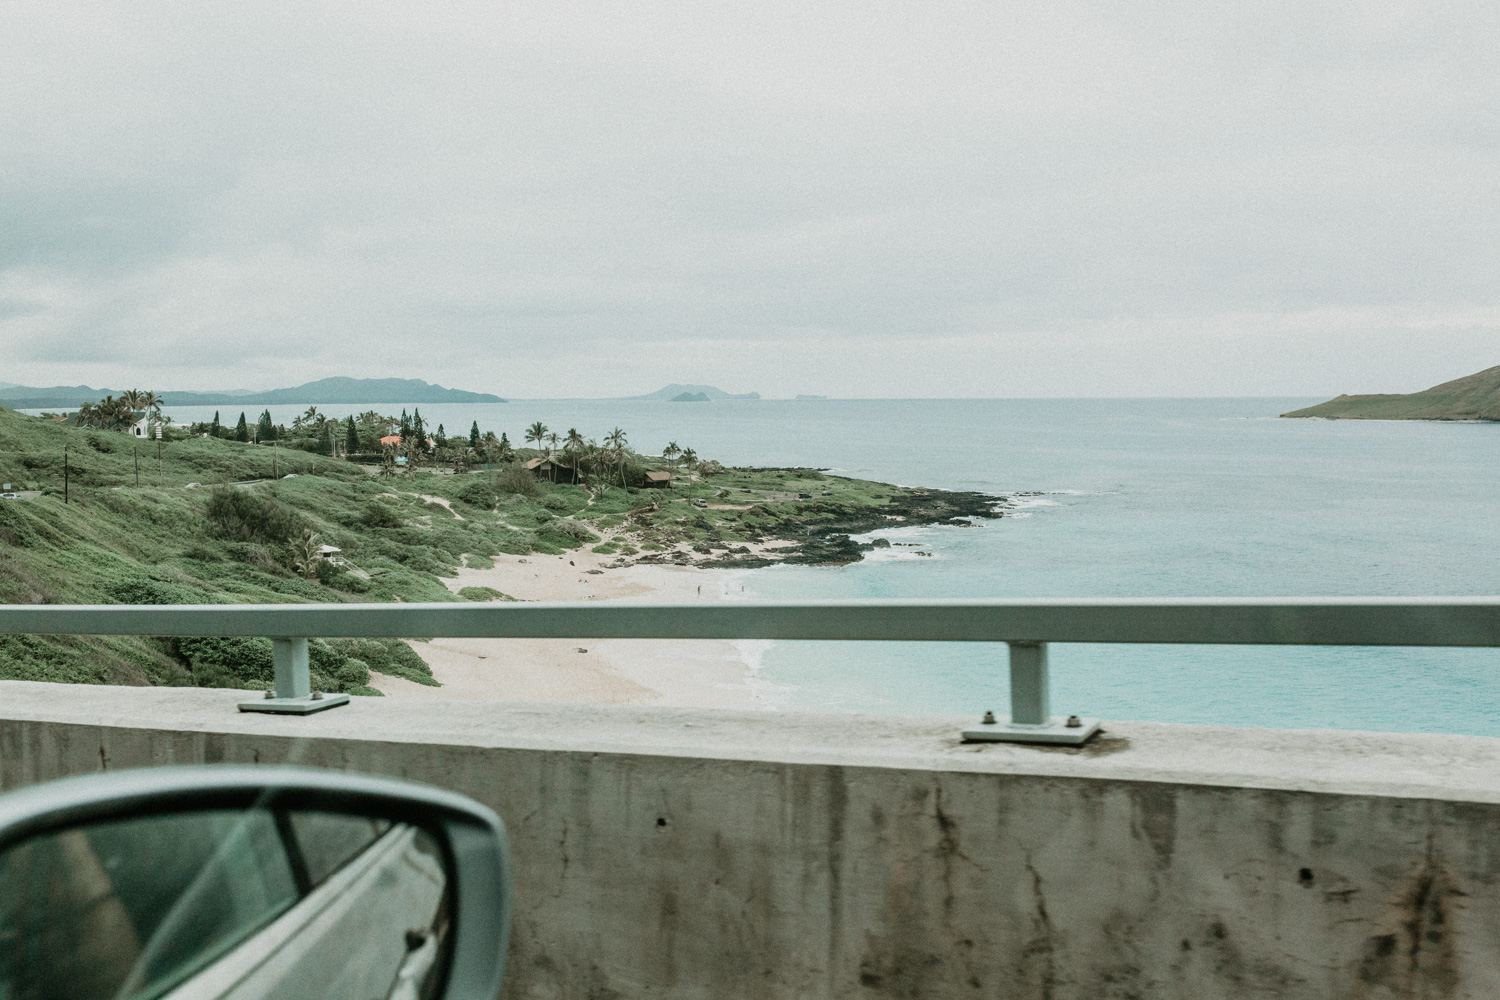 Just a random drive down the coast. Andrew wants to see where we ended up. It's the beauty to have many days unplanned.